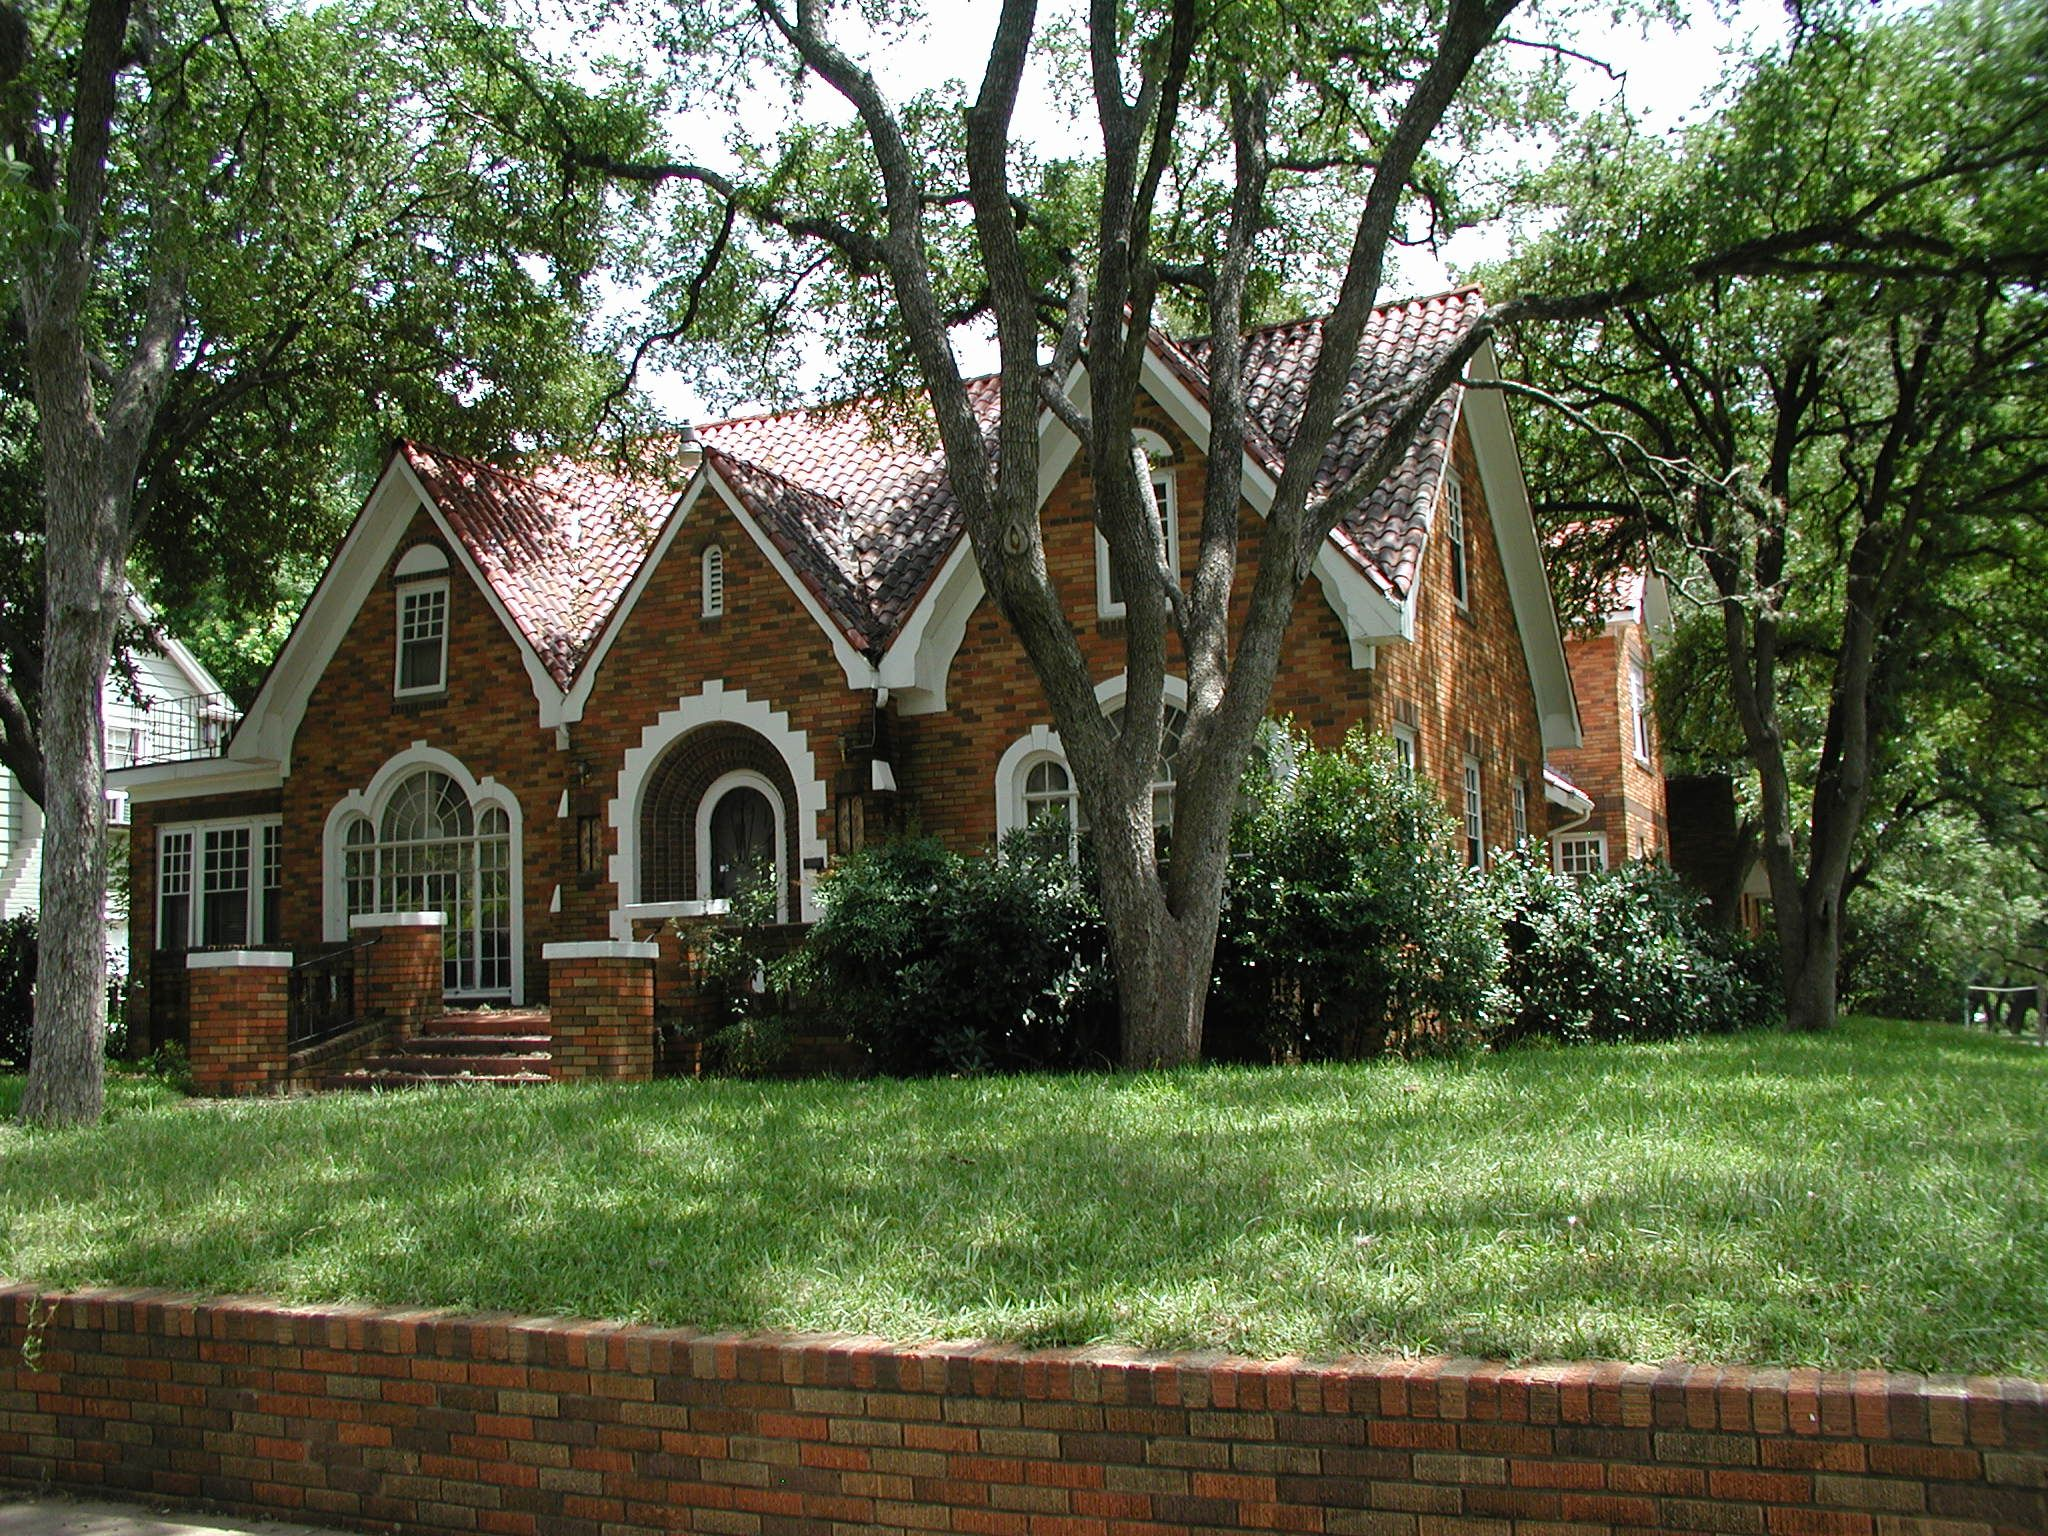 Brick tudor revival style home built in 1939 in the for Tudor revival house plans